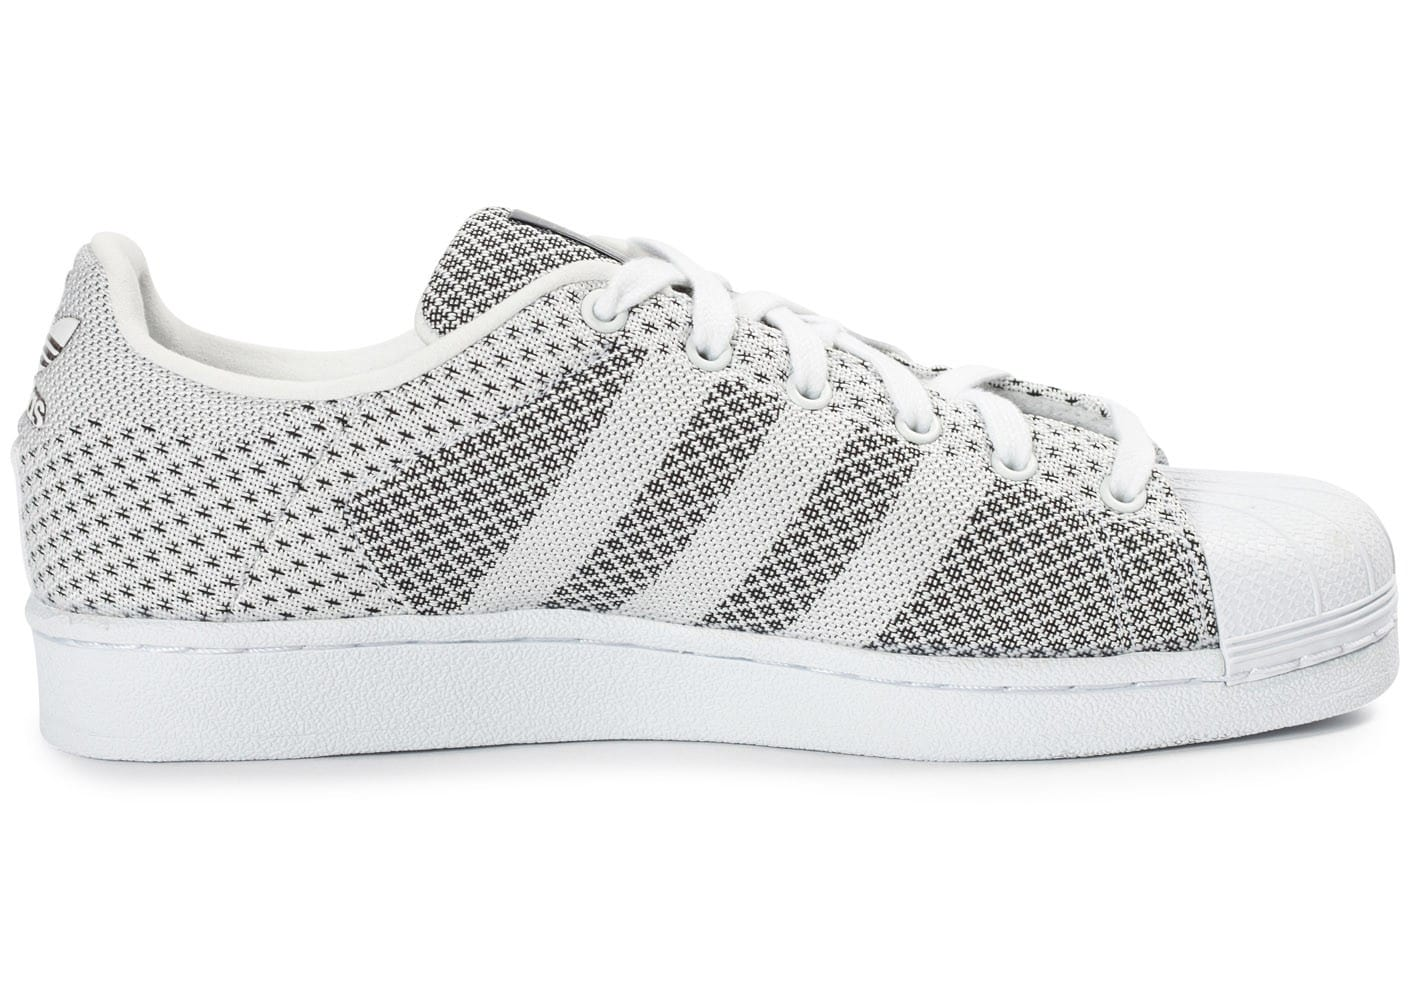 adidas superstar toile